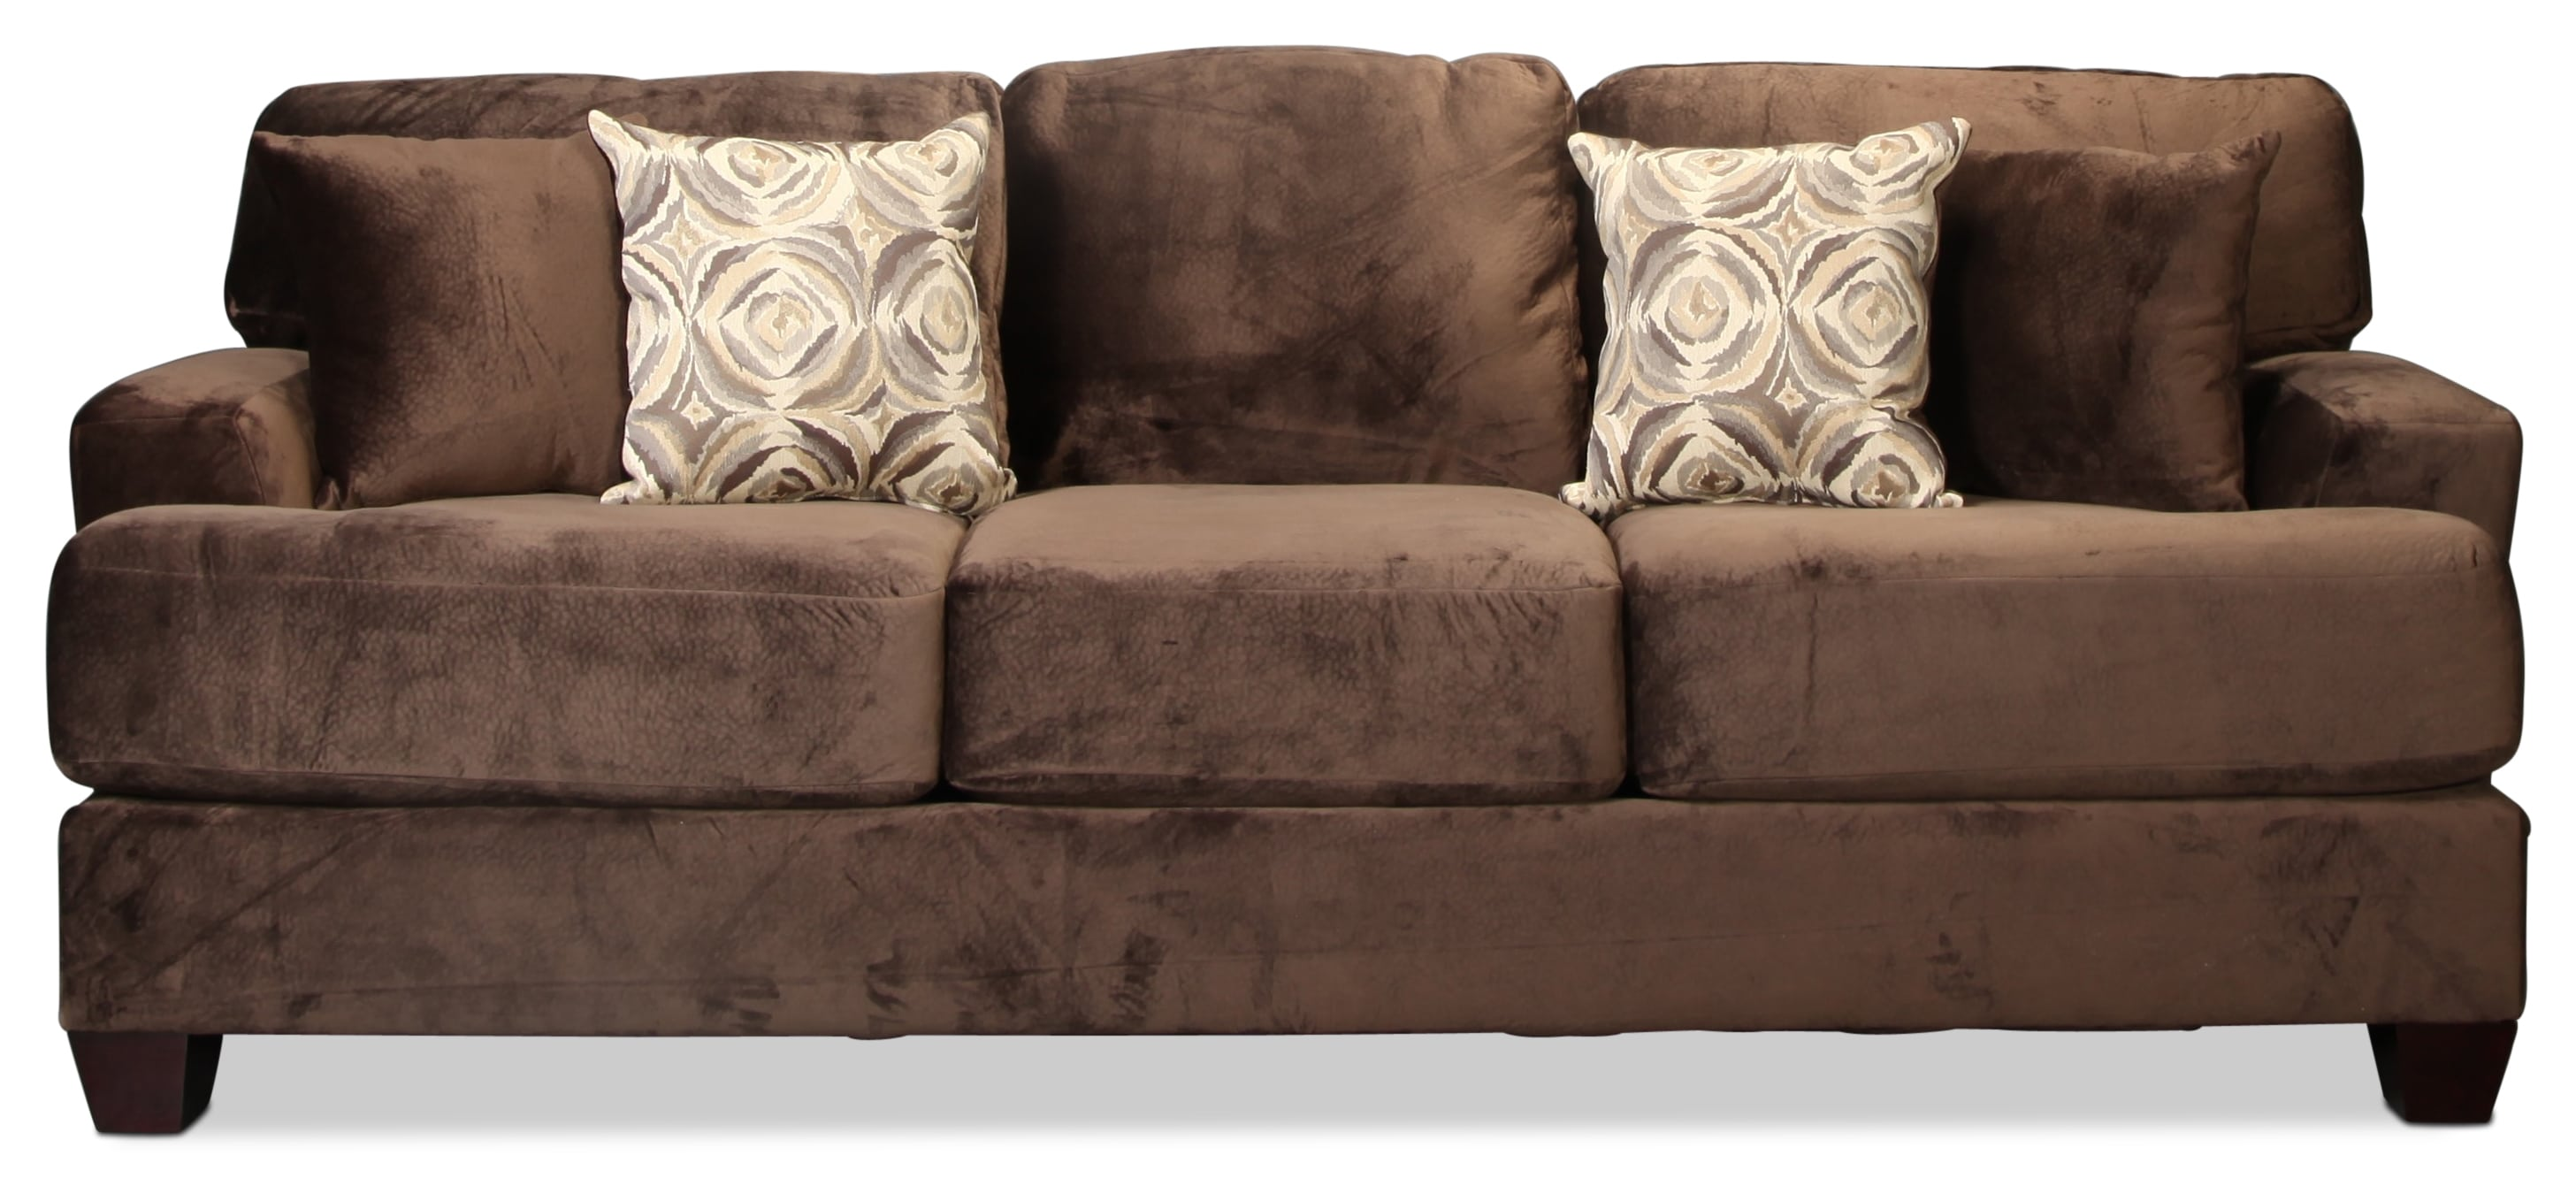 Montclaire Sofa - Chocolate